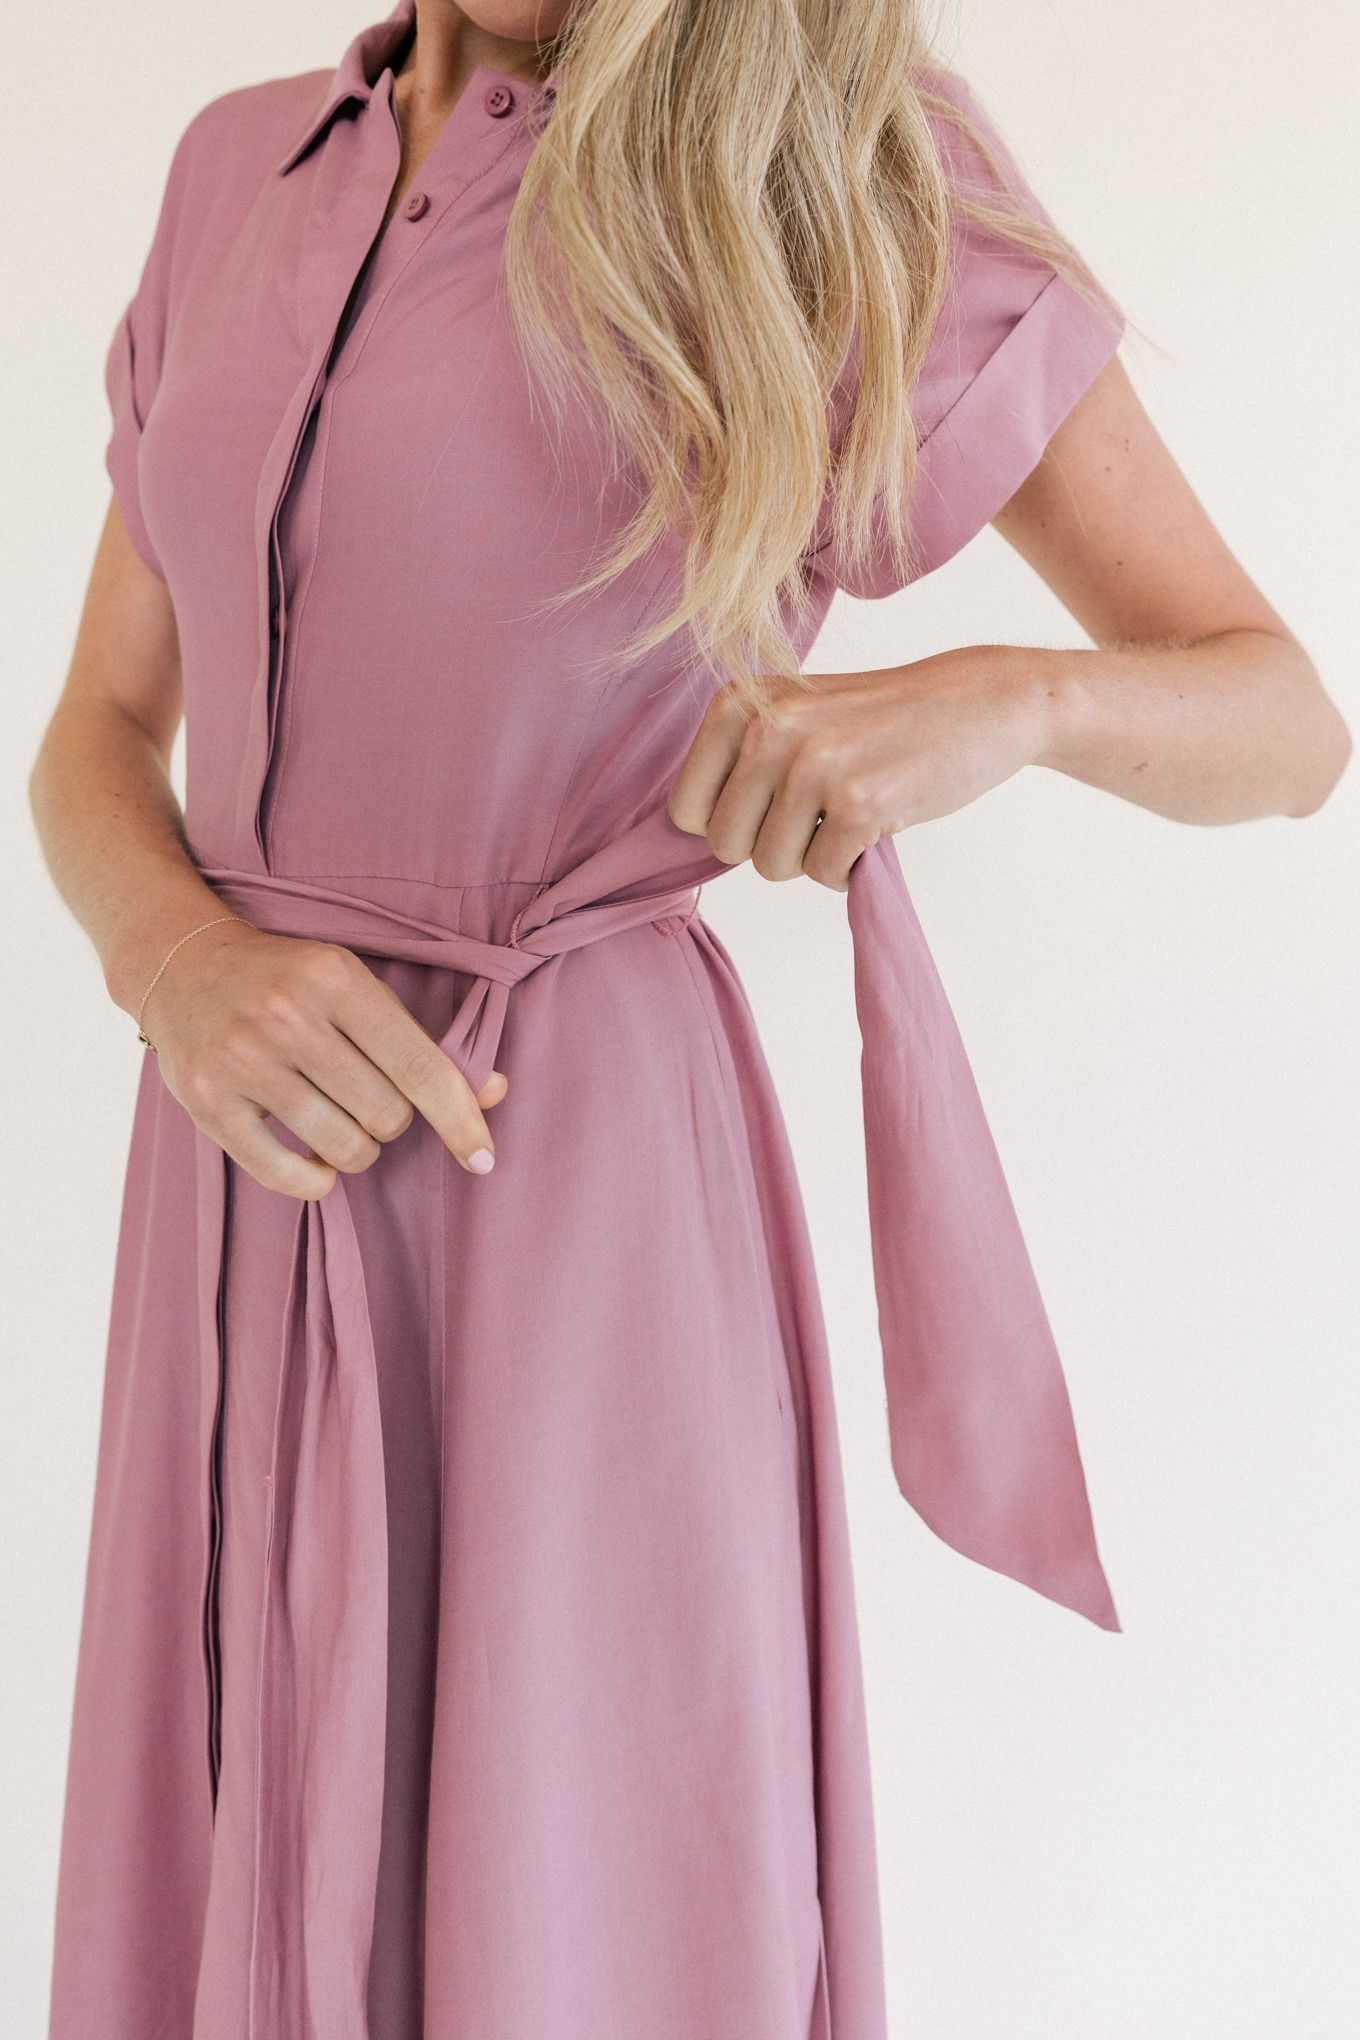 How to tie the perfect bow dresses wrap around dress